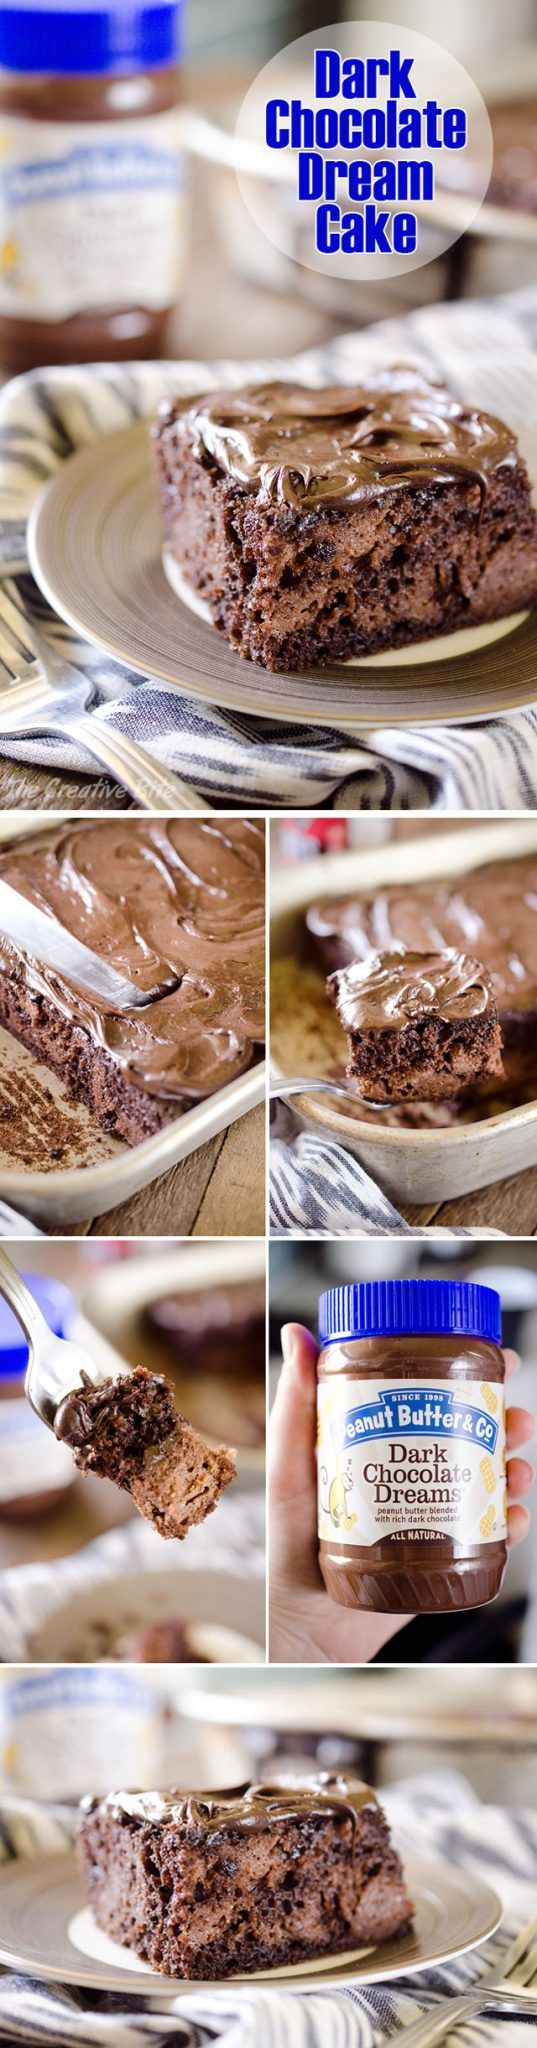 Dark Chocolate Dream Cake is an easy dessert recipe loaded with dark chocolate goodness for a rich and decadent treat! #DarkChocolate #Cake #Sweet #Easy #Chocolate